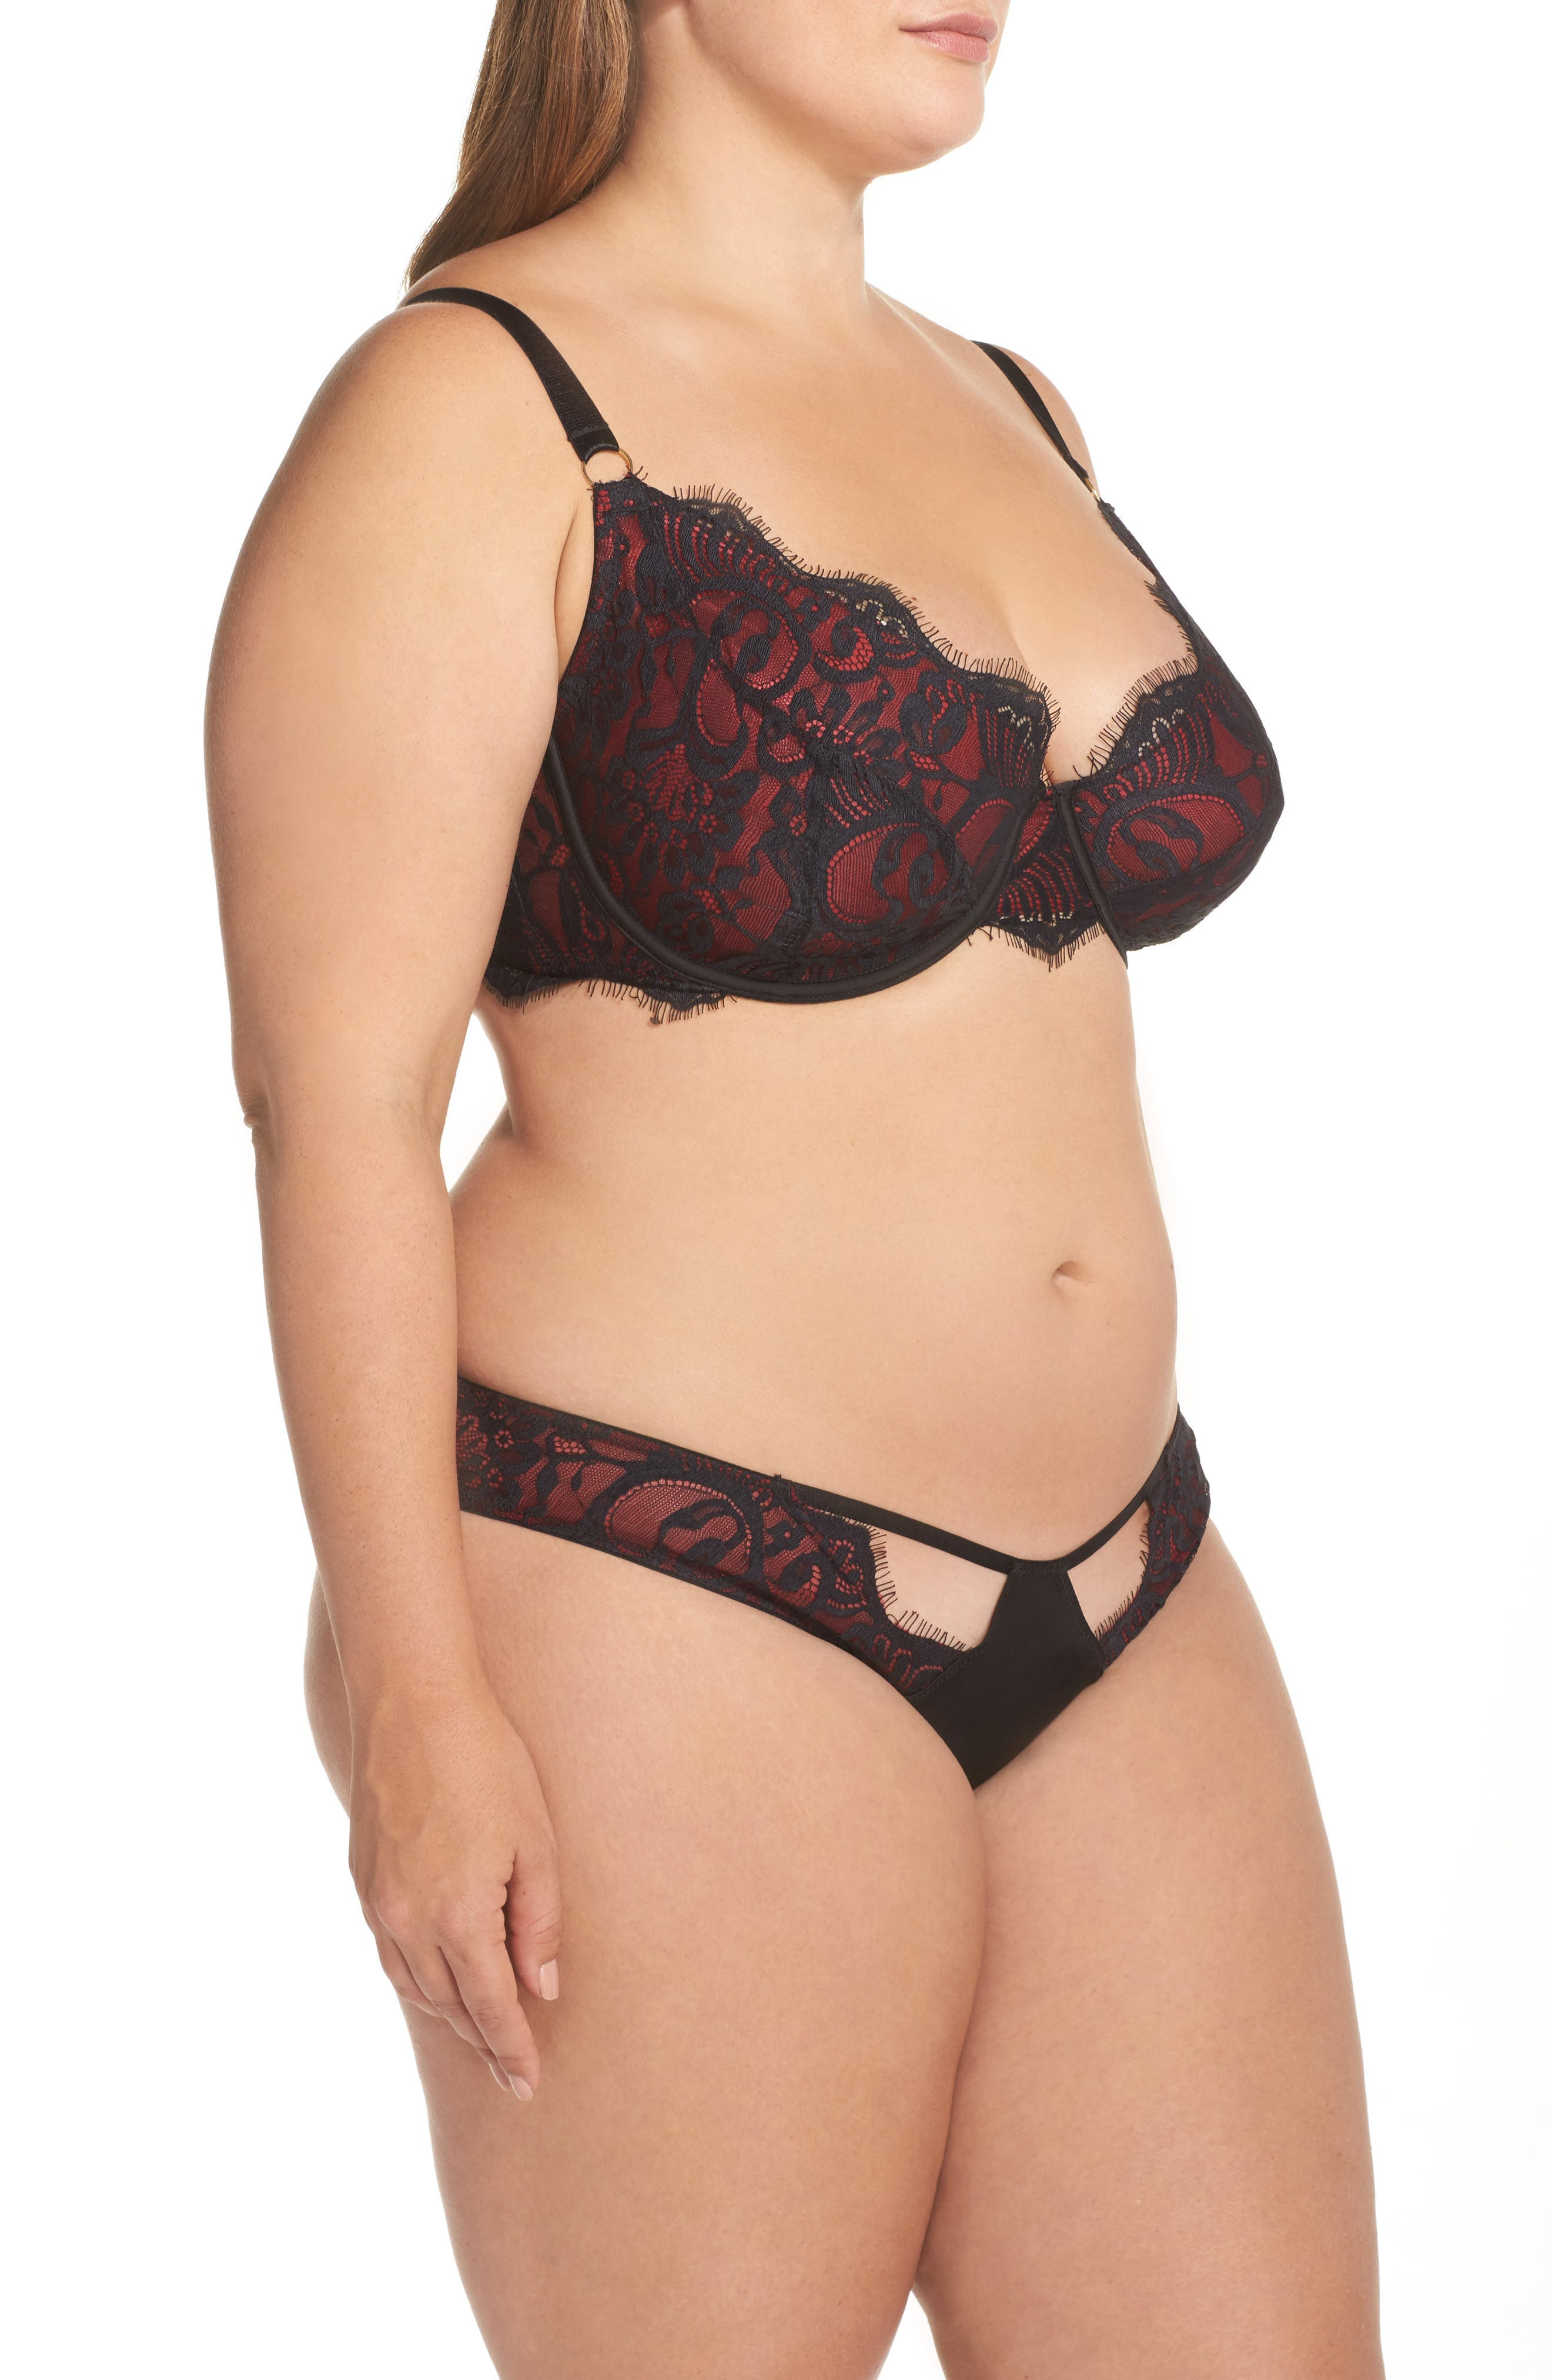 Bailey Curve Embroidered Bikini,                             Alternate thumbnail 7, color,                             Red